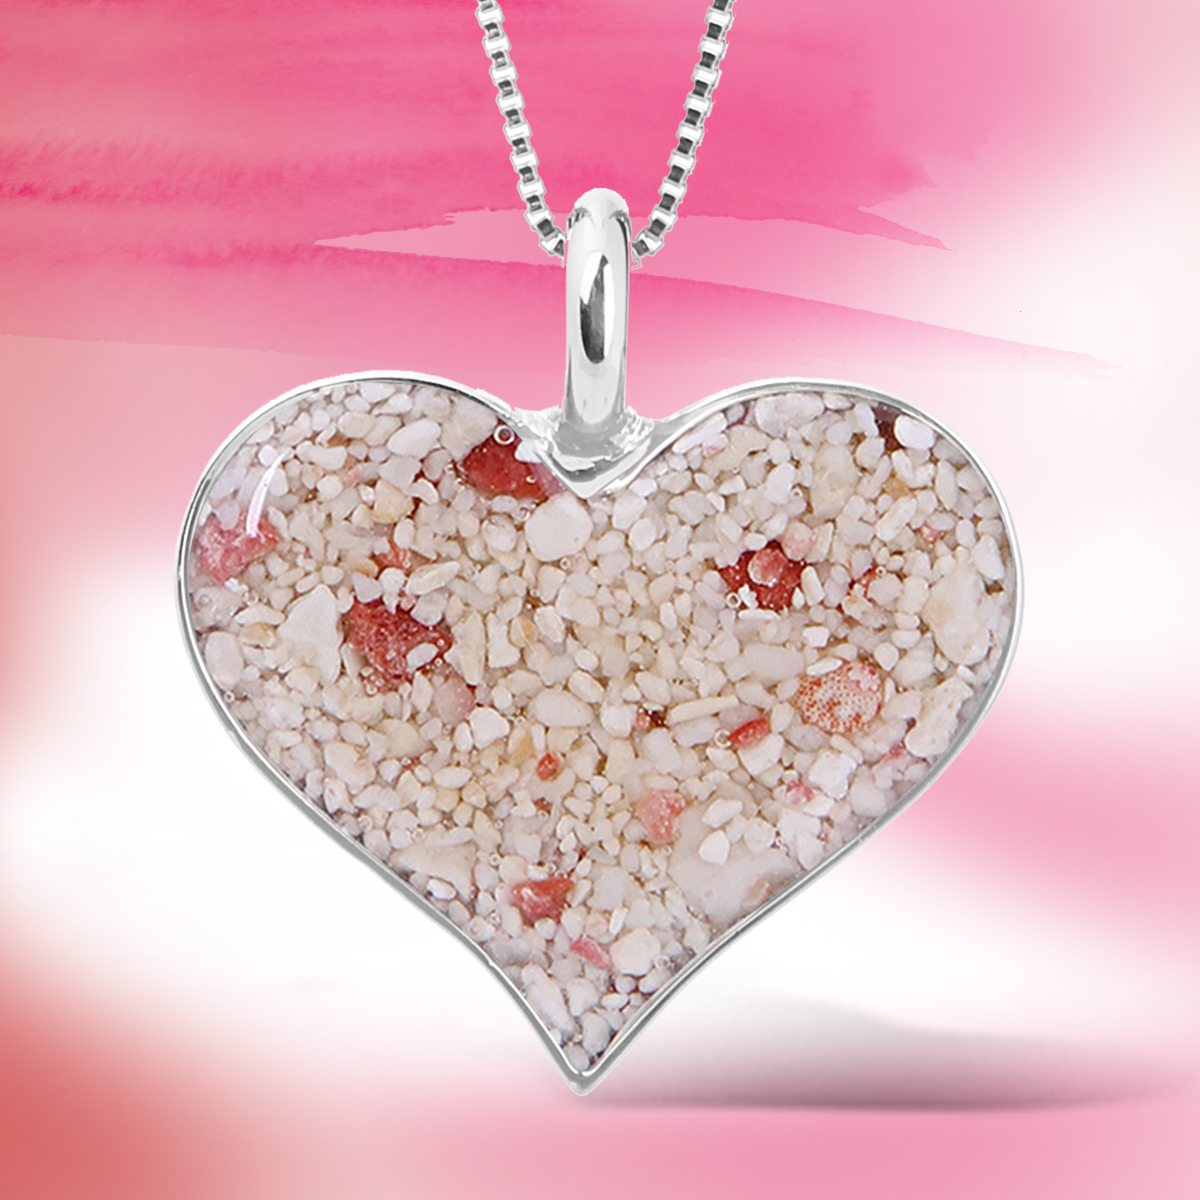 chains sterling jewelry fine necklace floating inlaid fashion shipping collier heart jewellery stone type charms free pendant femme women silver plated quality beautiful top charm valentines shop day cute